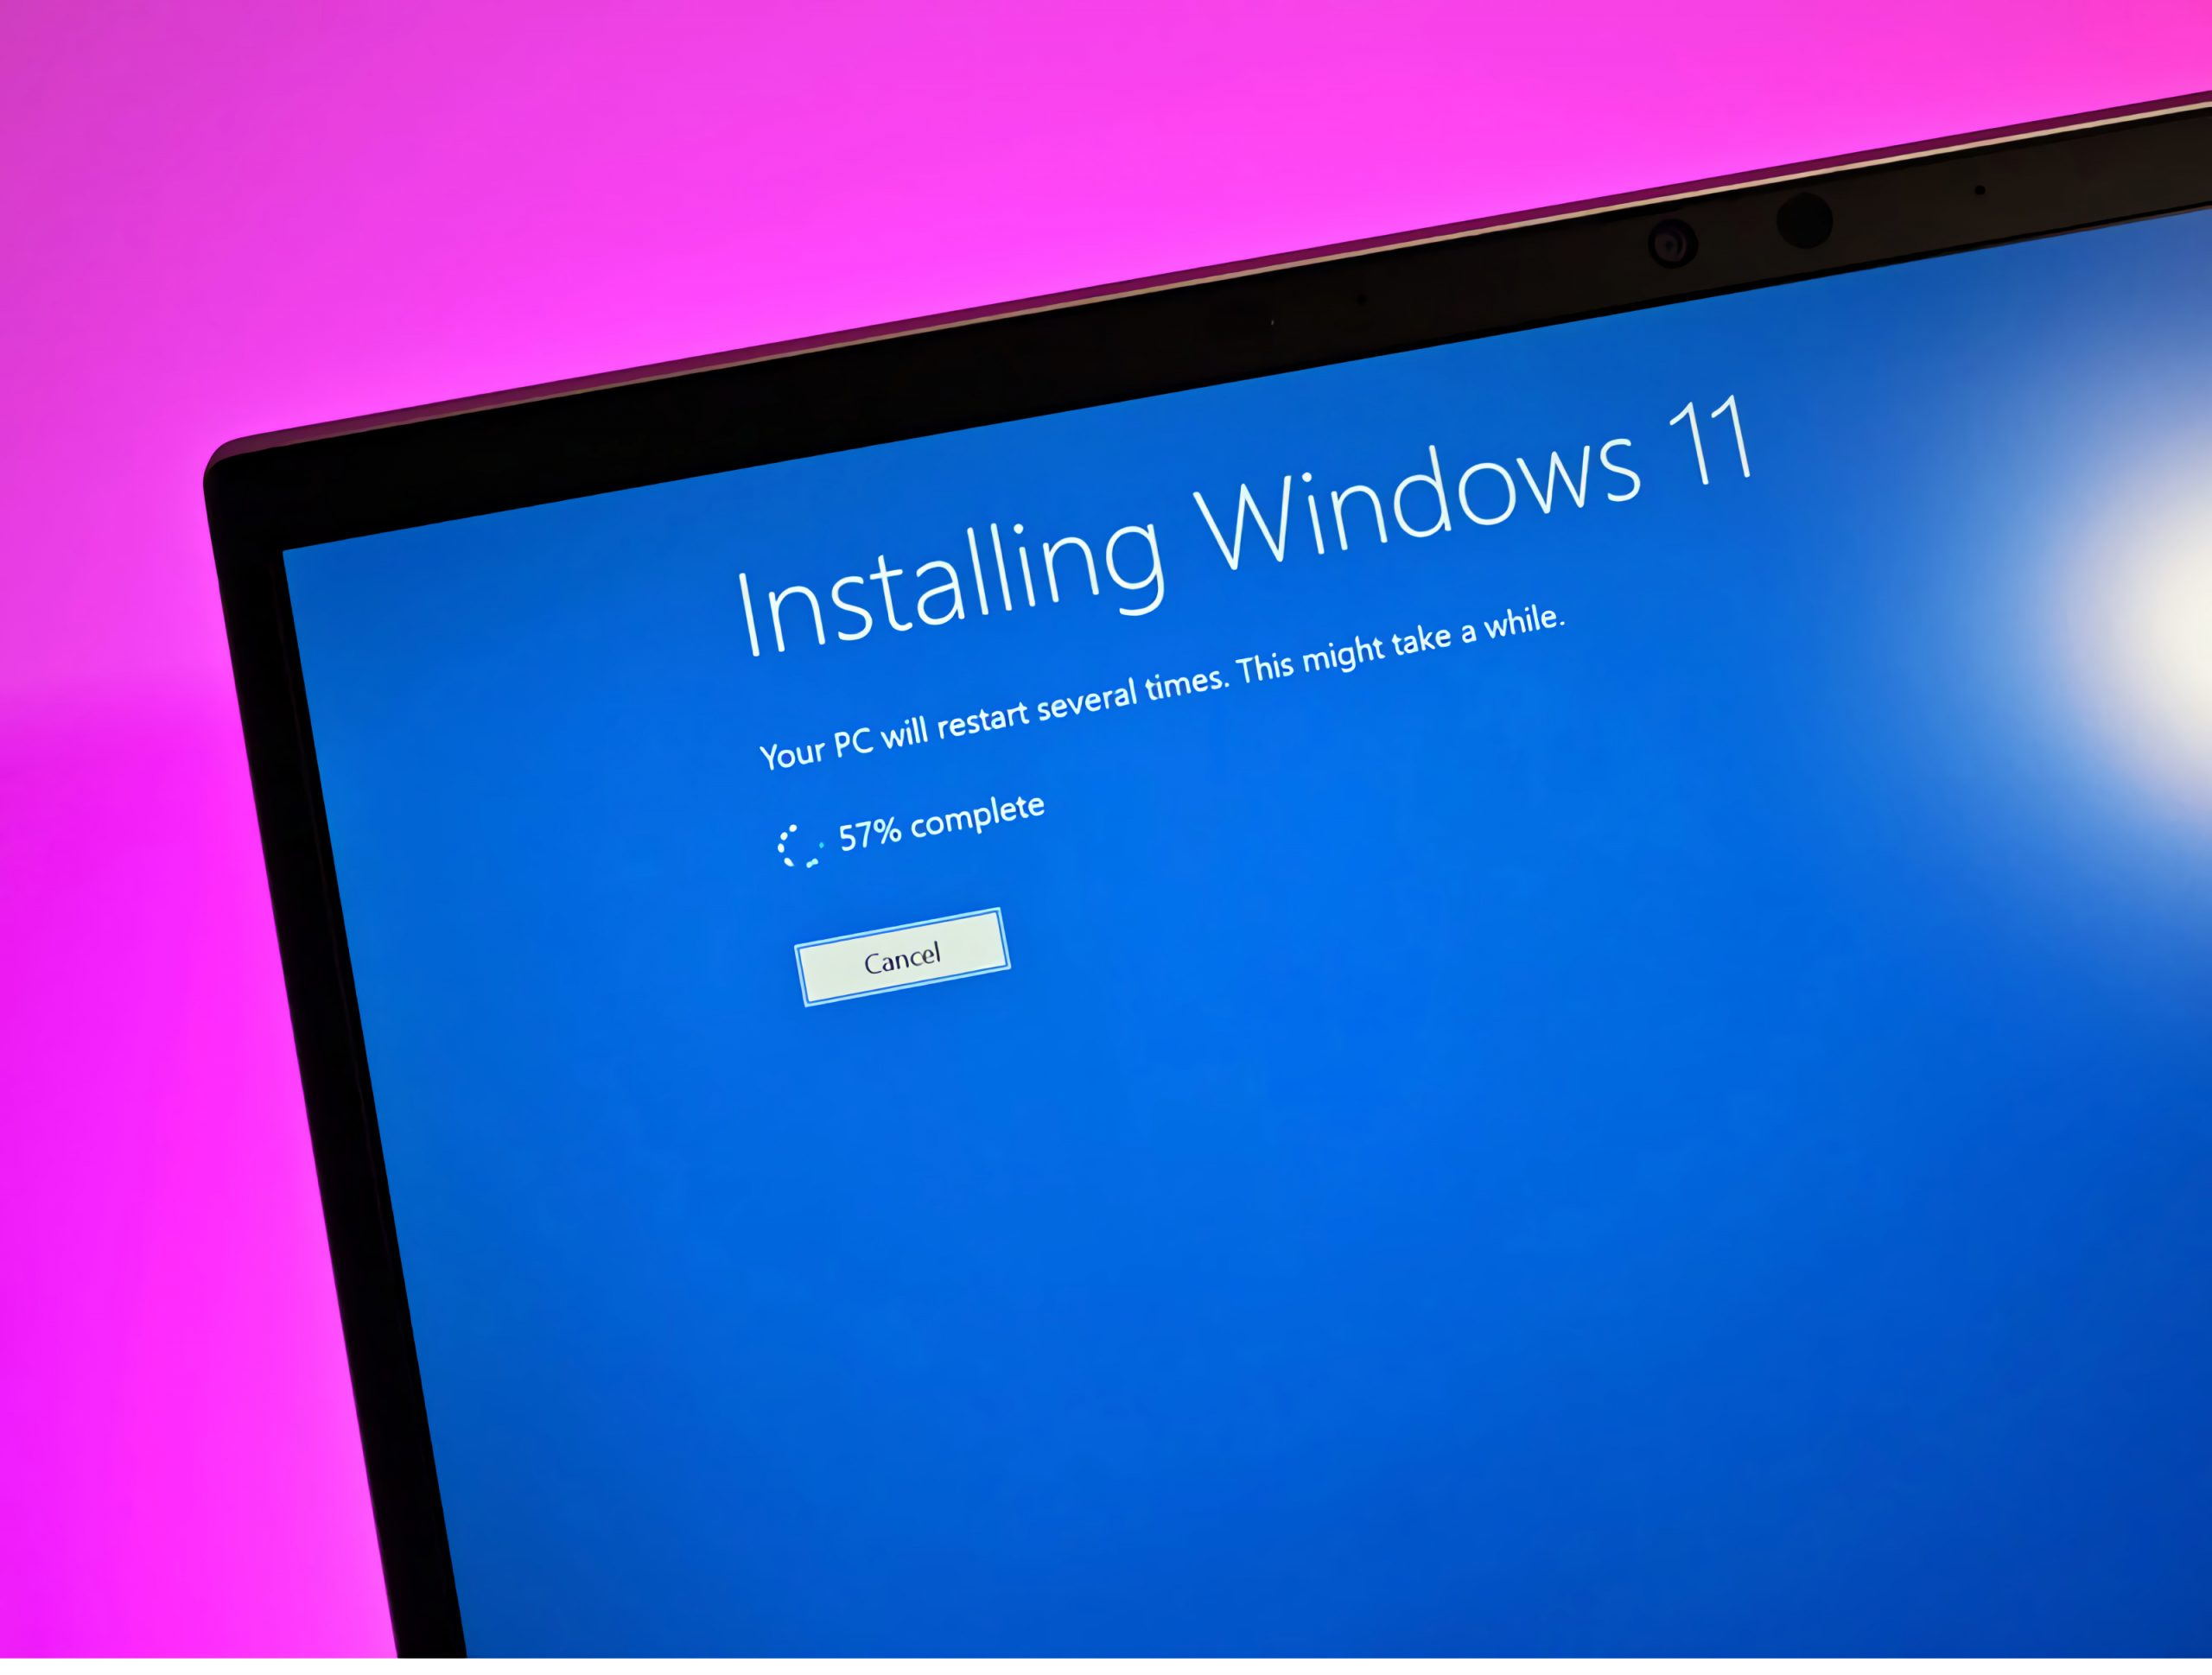 Why might Windows 11 not work on my old PC?